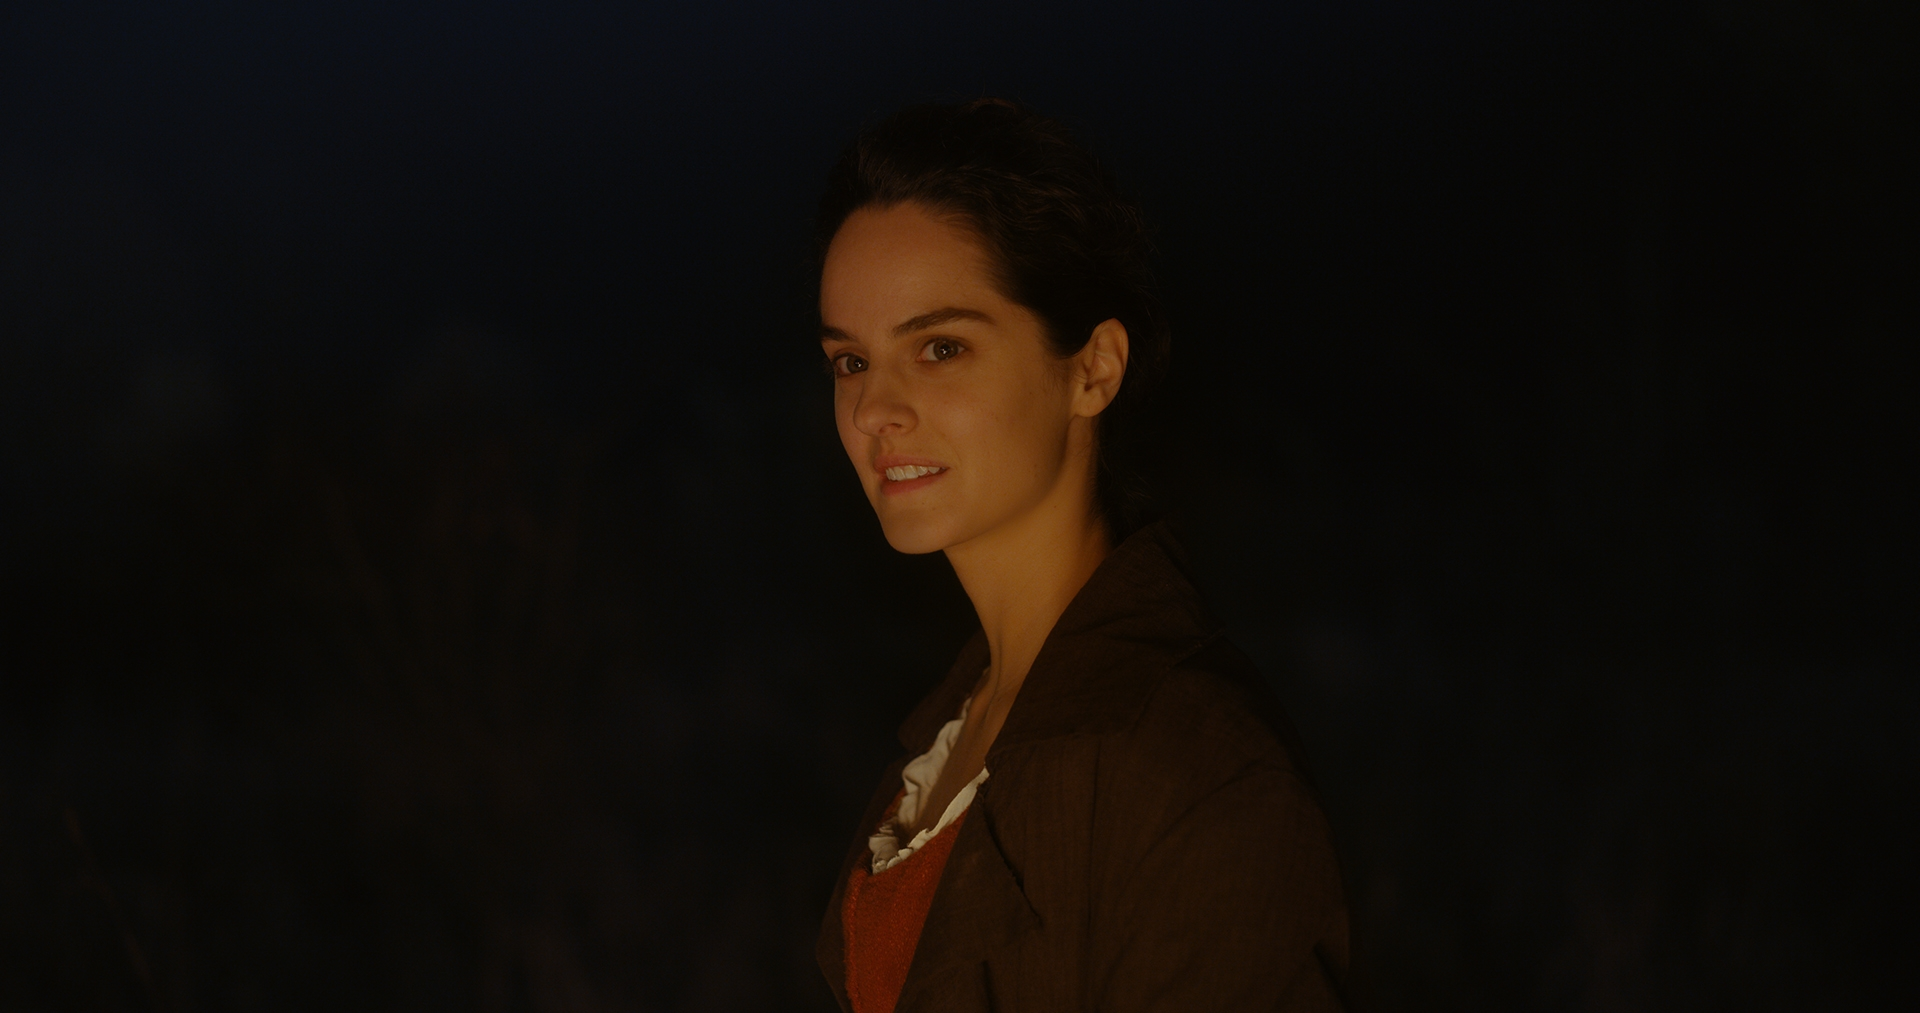 Noémie Merlant as Marianne by the bonfire in Portrait of a Lady on Fire